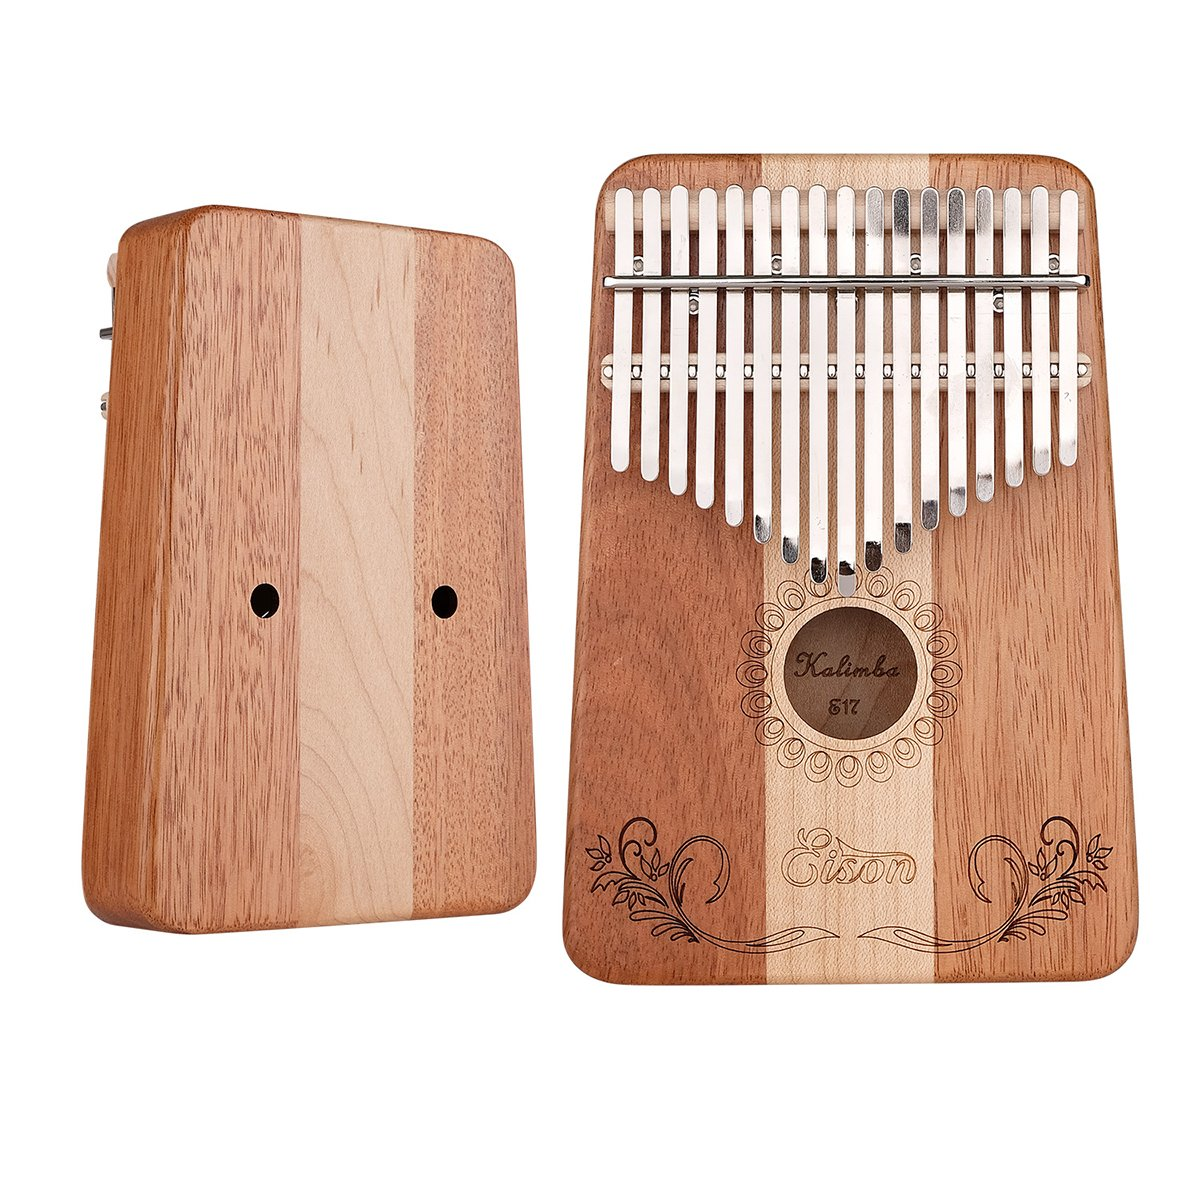 Kalimba,Eison Kalimba Thumb Piano Finger Piano 17 keys with Key Locking System with Instruction and Tune Hammer, Solid Wood Mahogany & Maple Body- Best Gift for Music Fans Kids Adults,E-17 by Eison (Image #4)